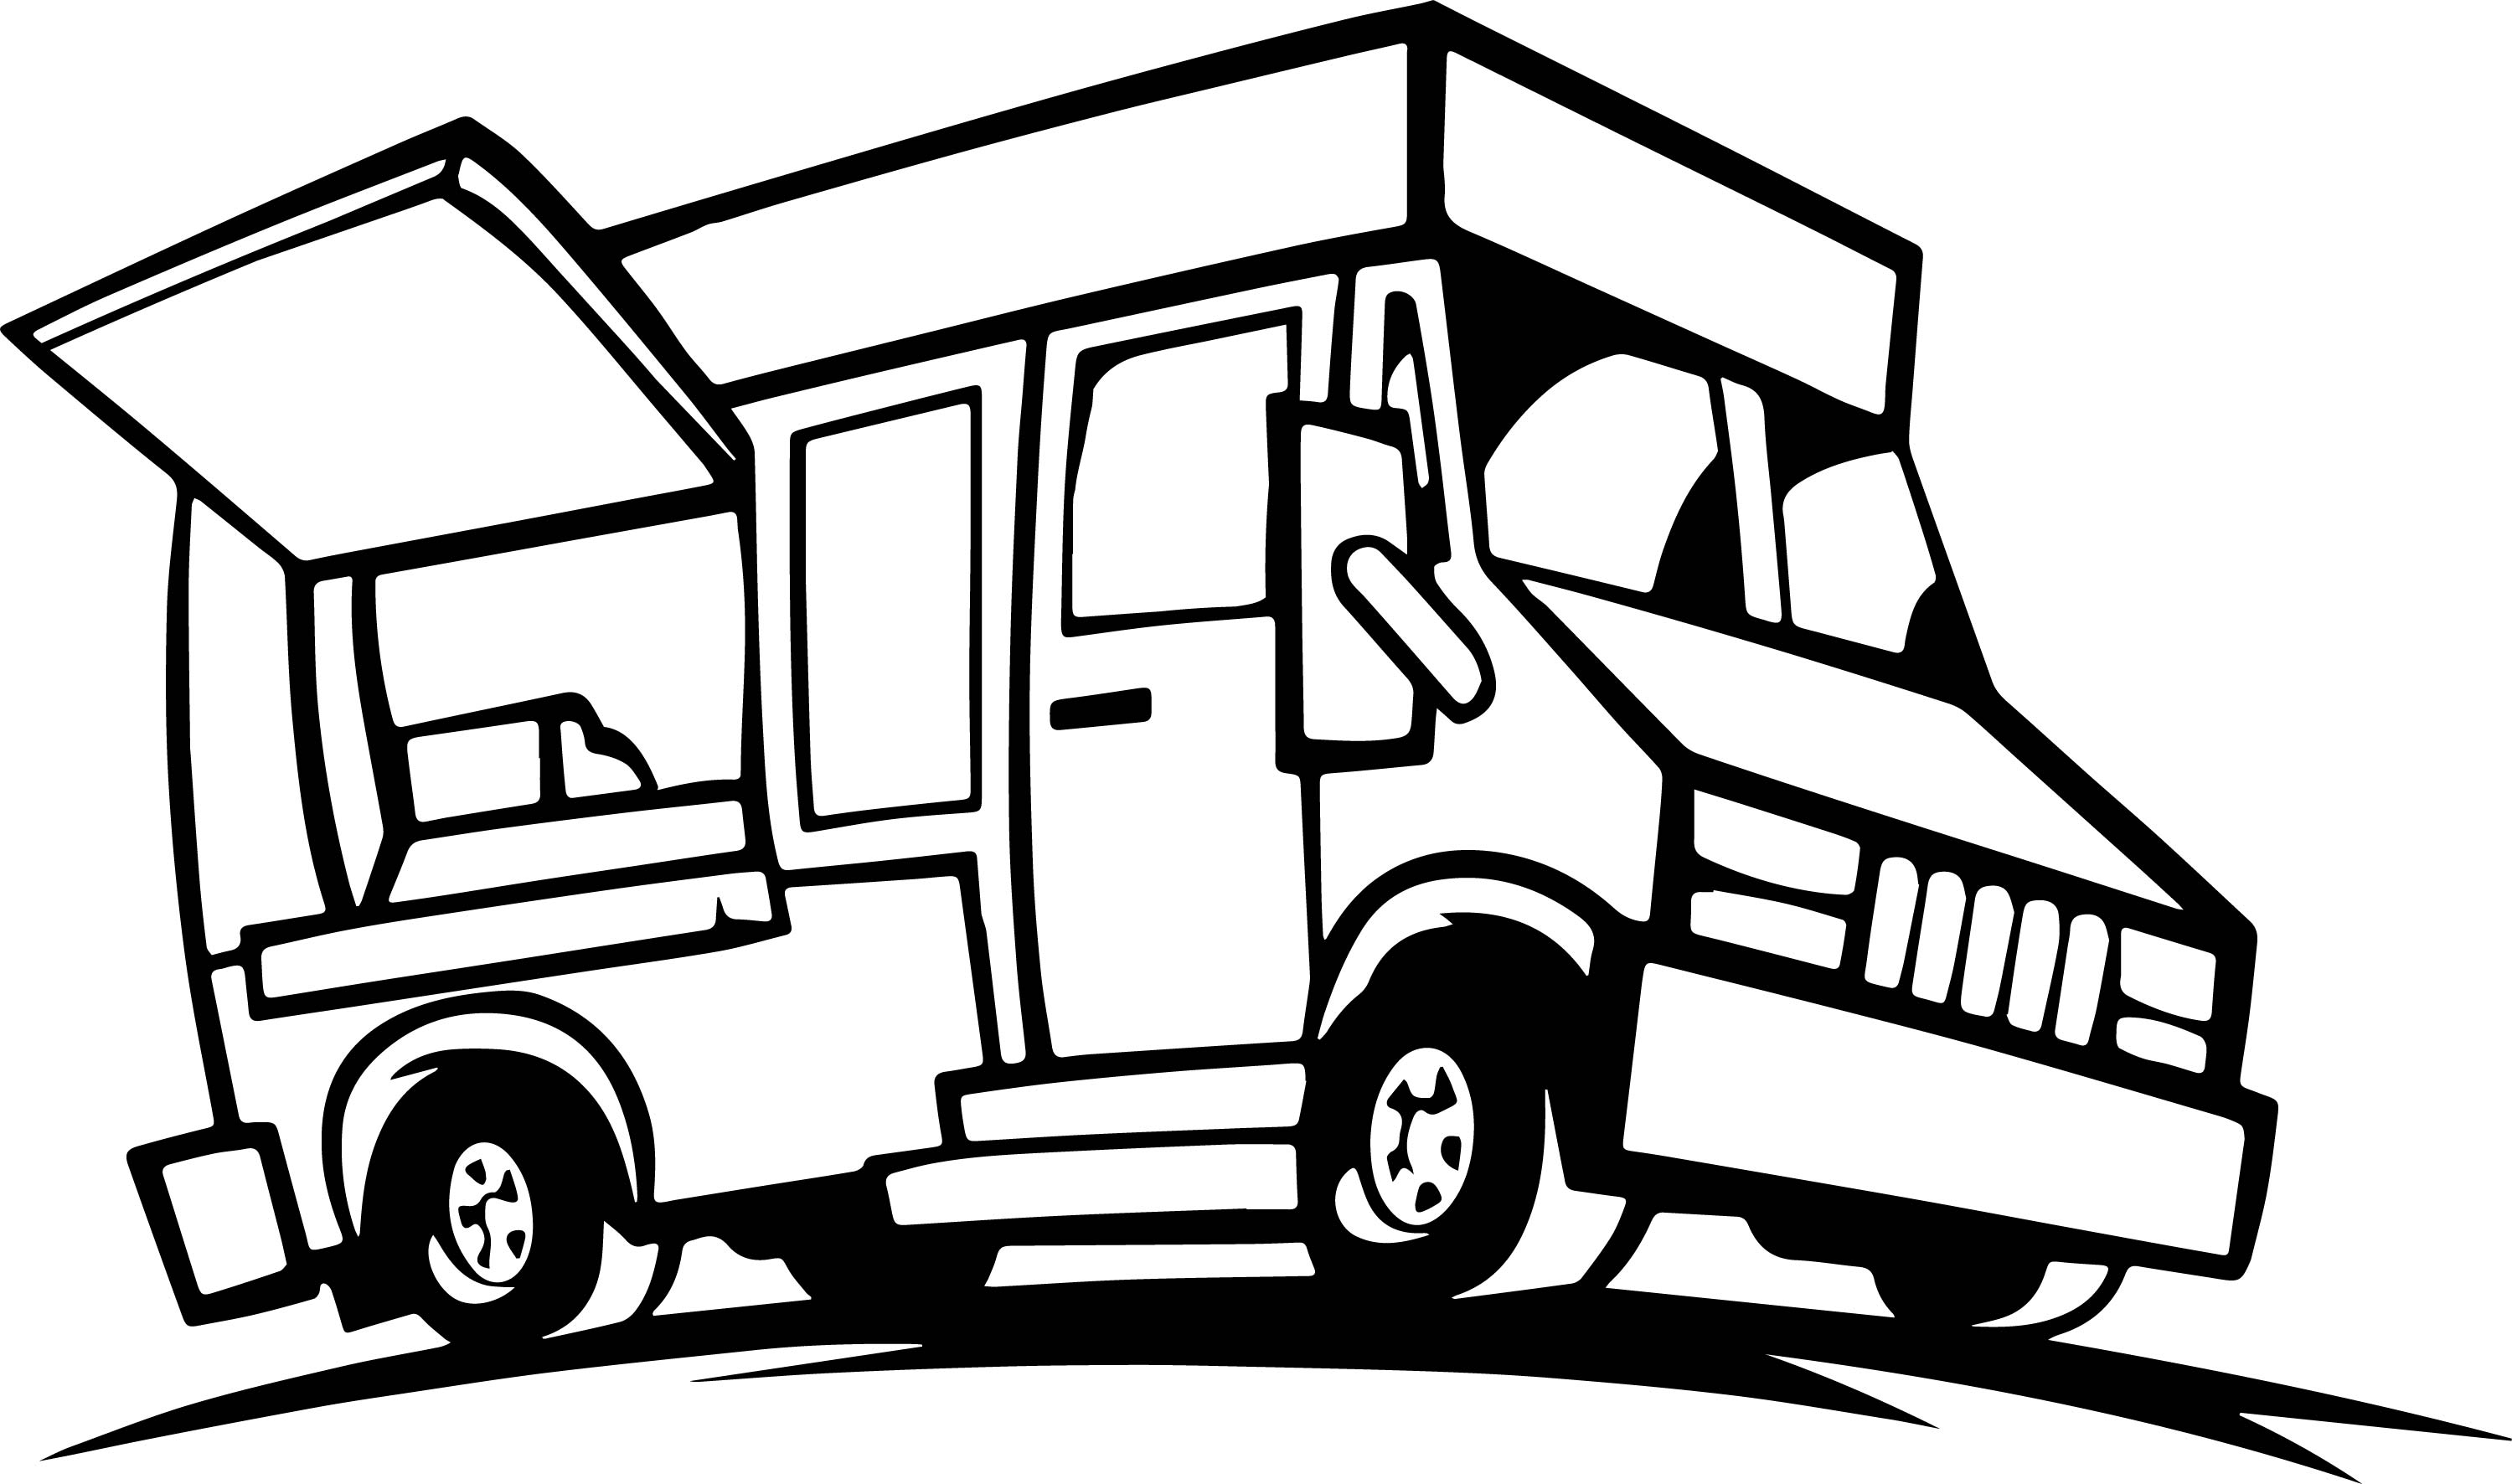 food truck coloring page pizza food truck coloring page coloringcrewcom coloring truck food page